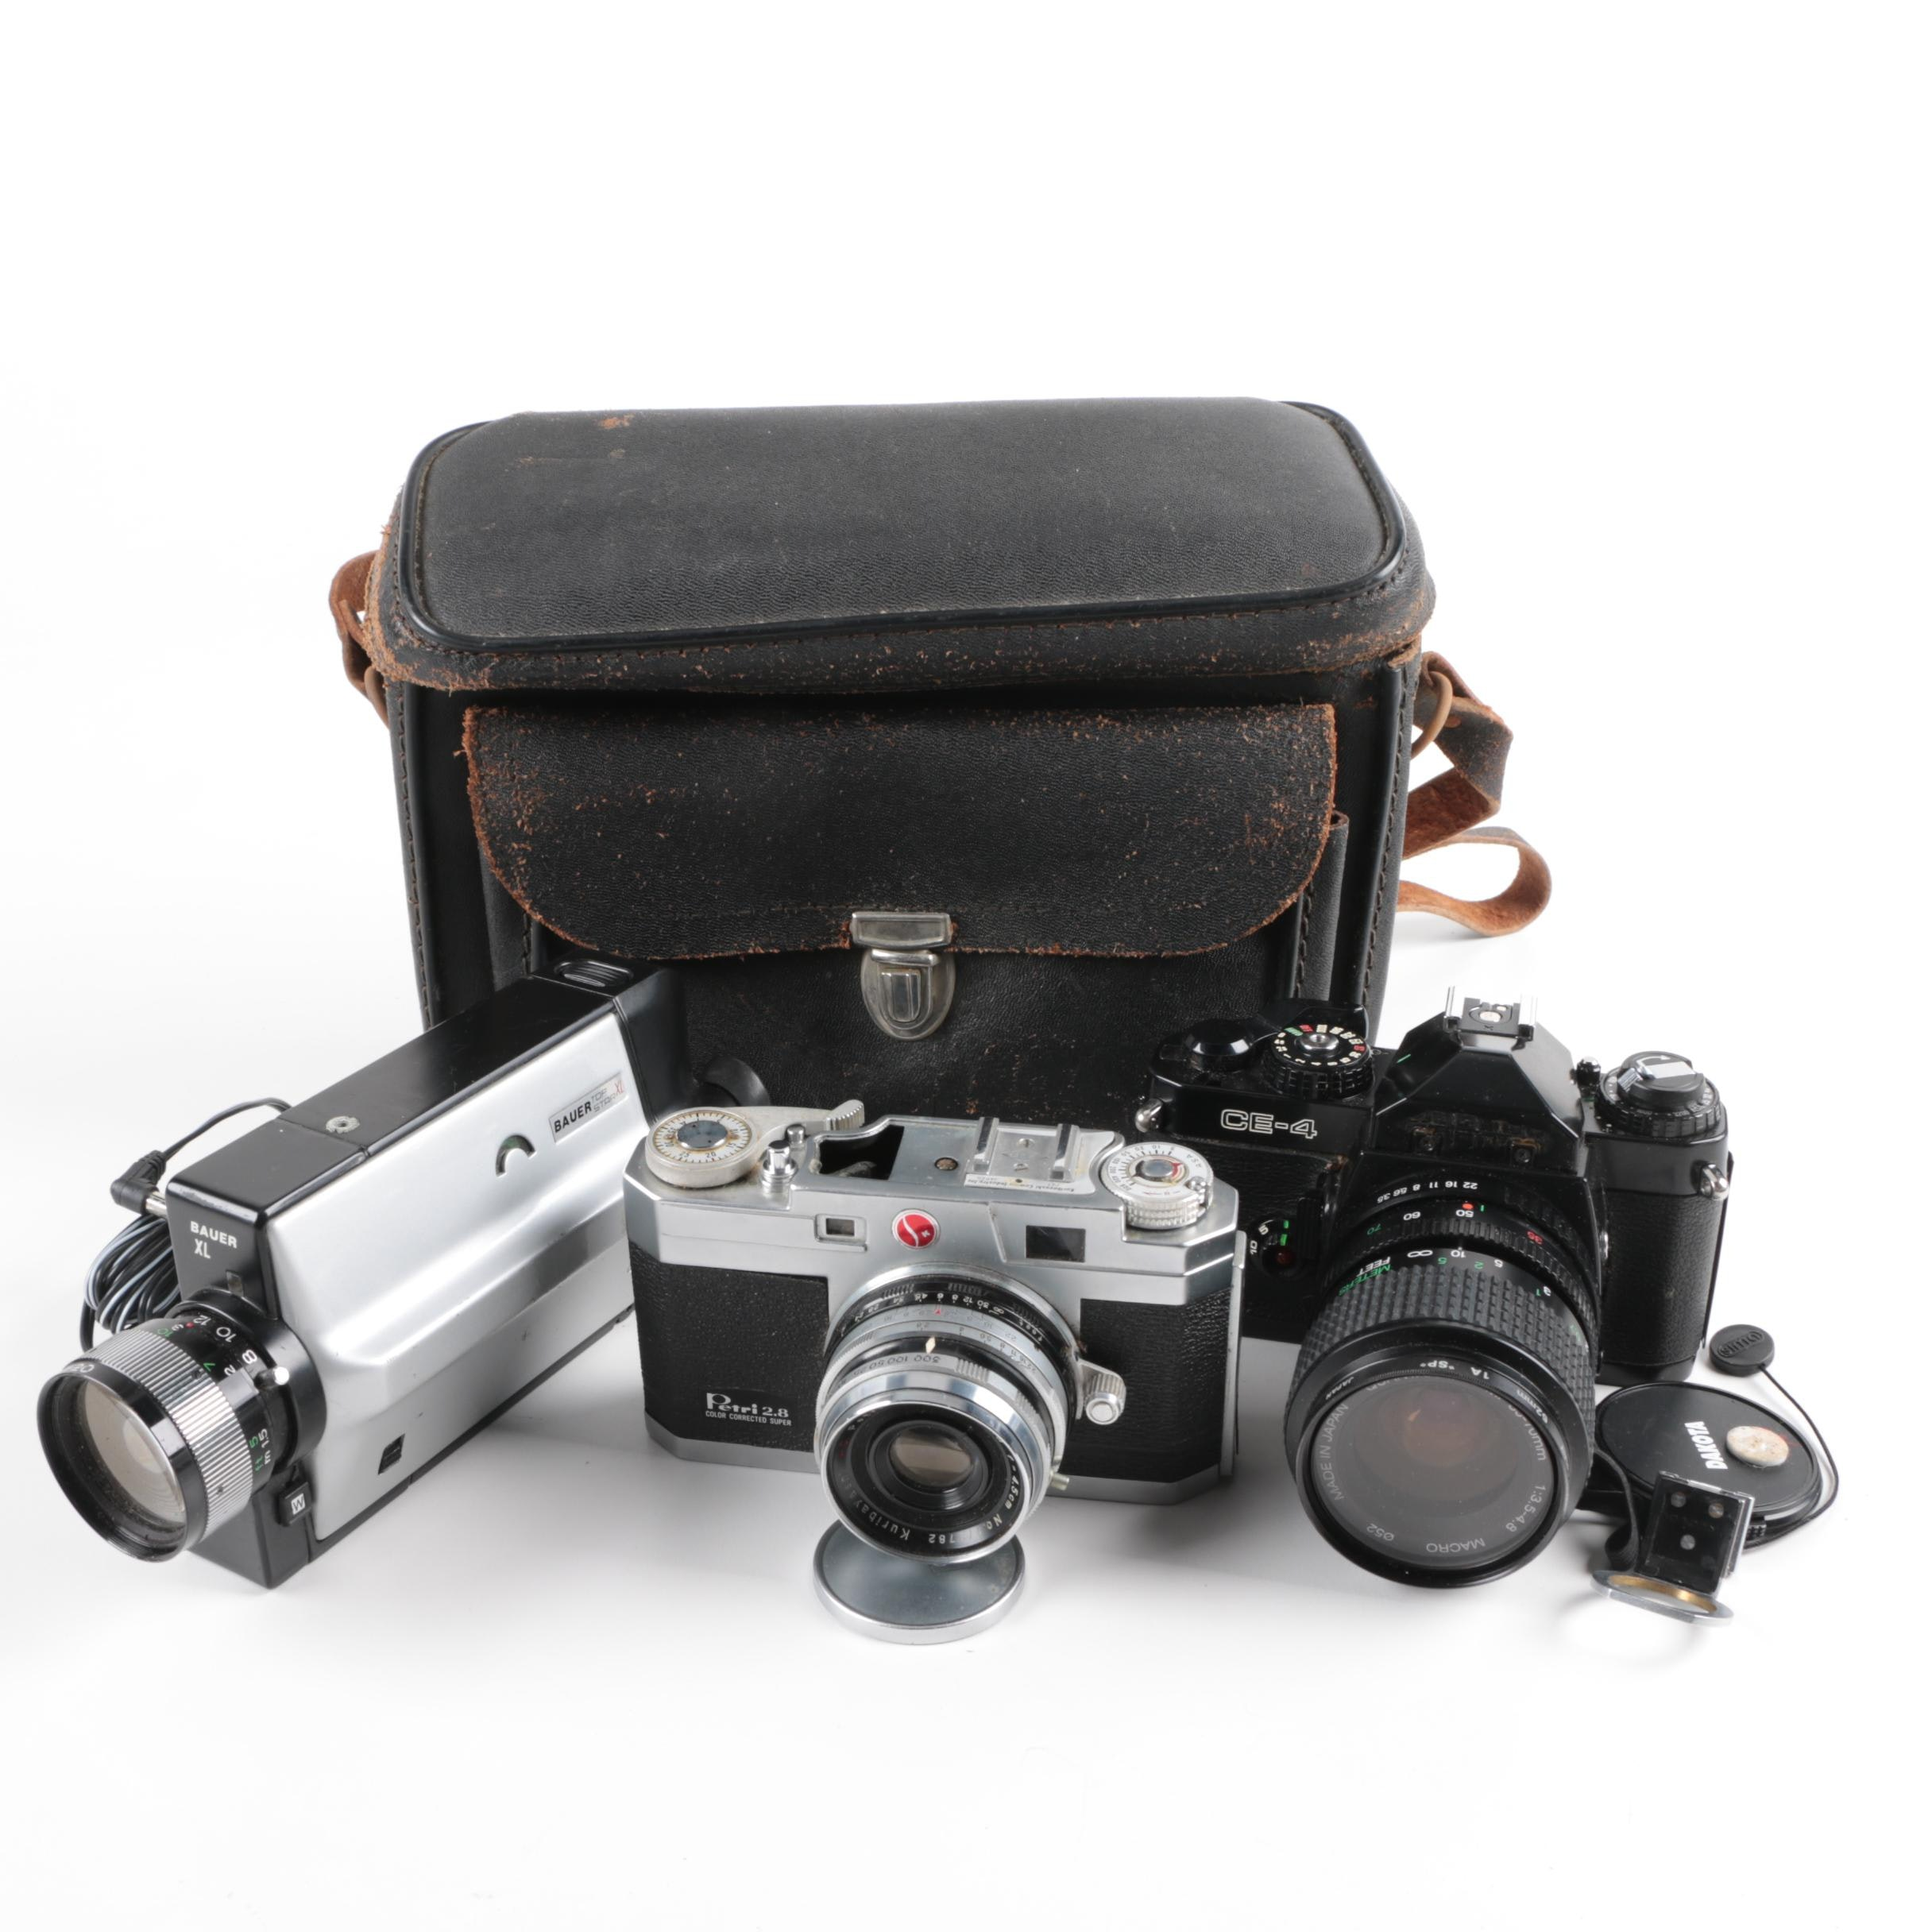 Vintage Still and Super 8 Cameras with Leather Case